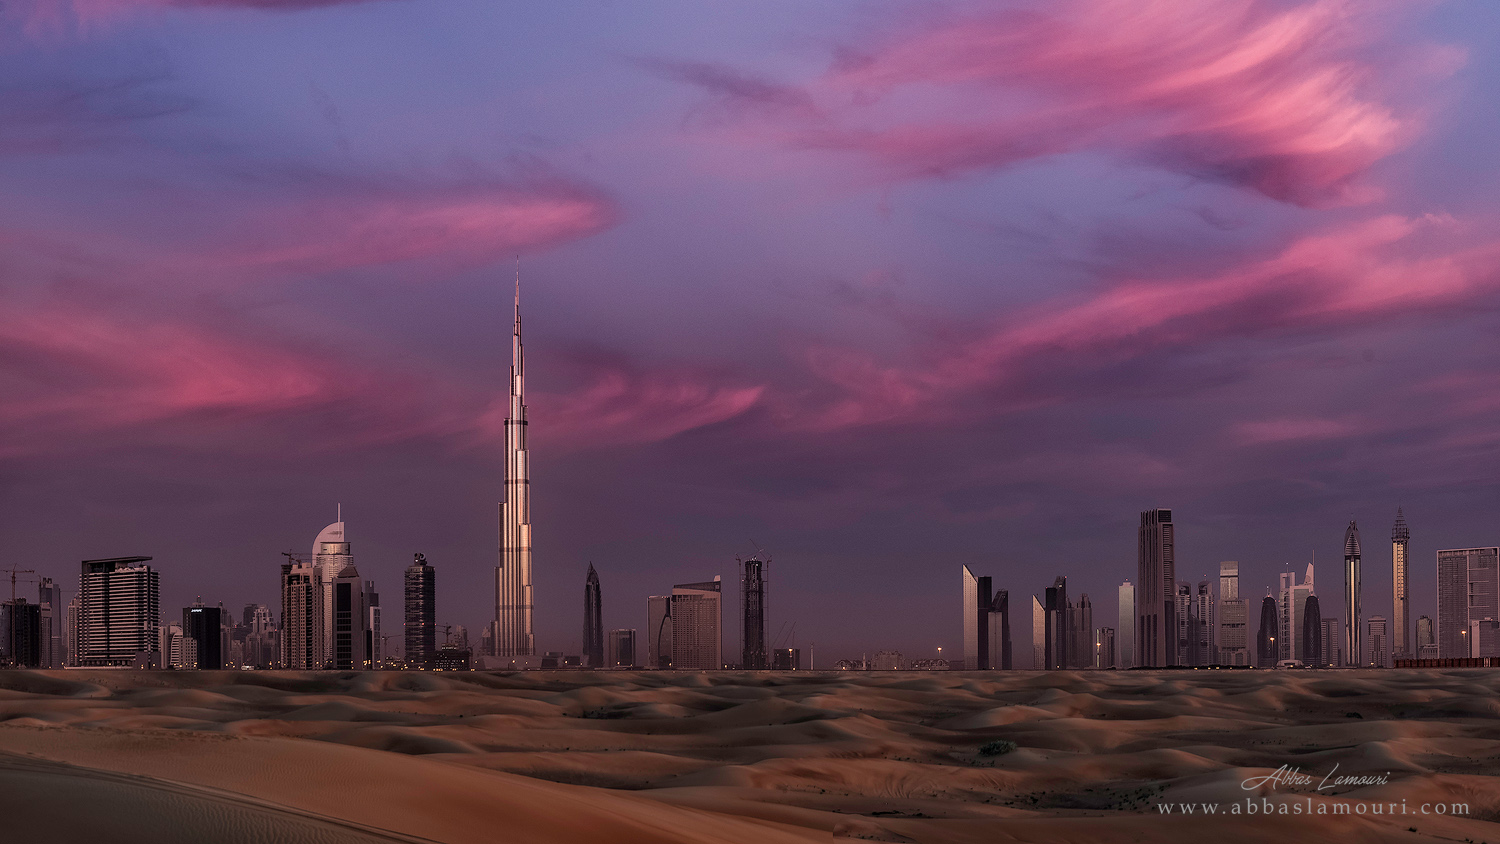 Dubai Skyline from Ras Al Khor - Dubai, UAE